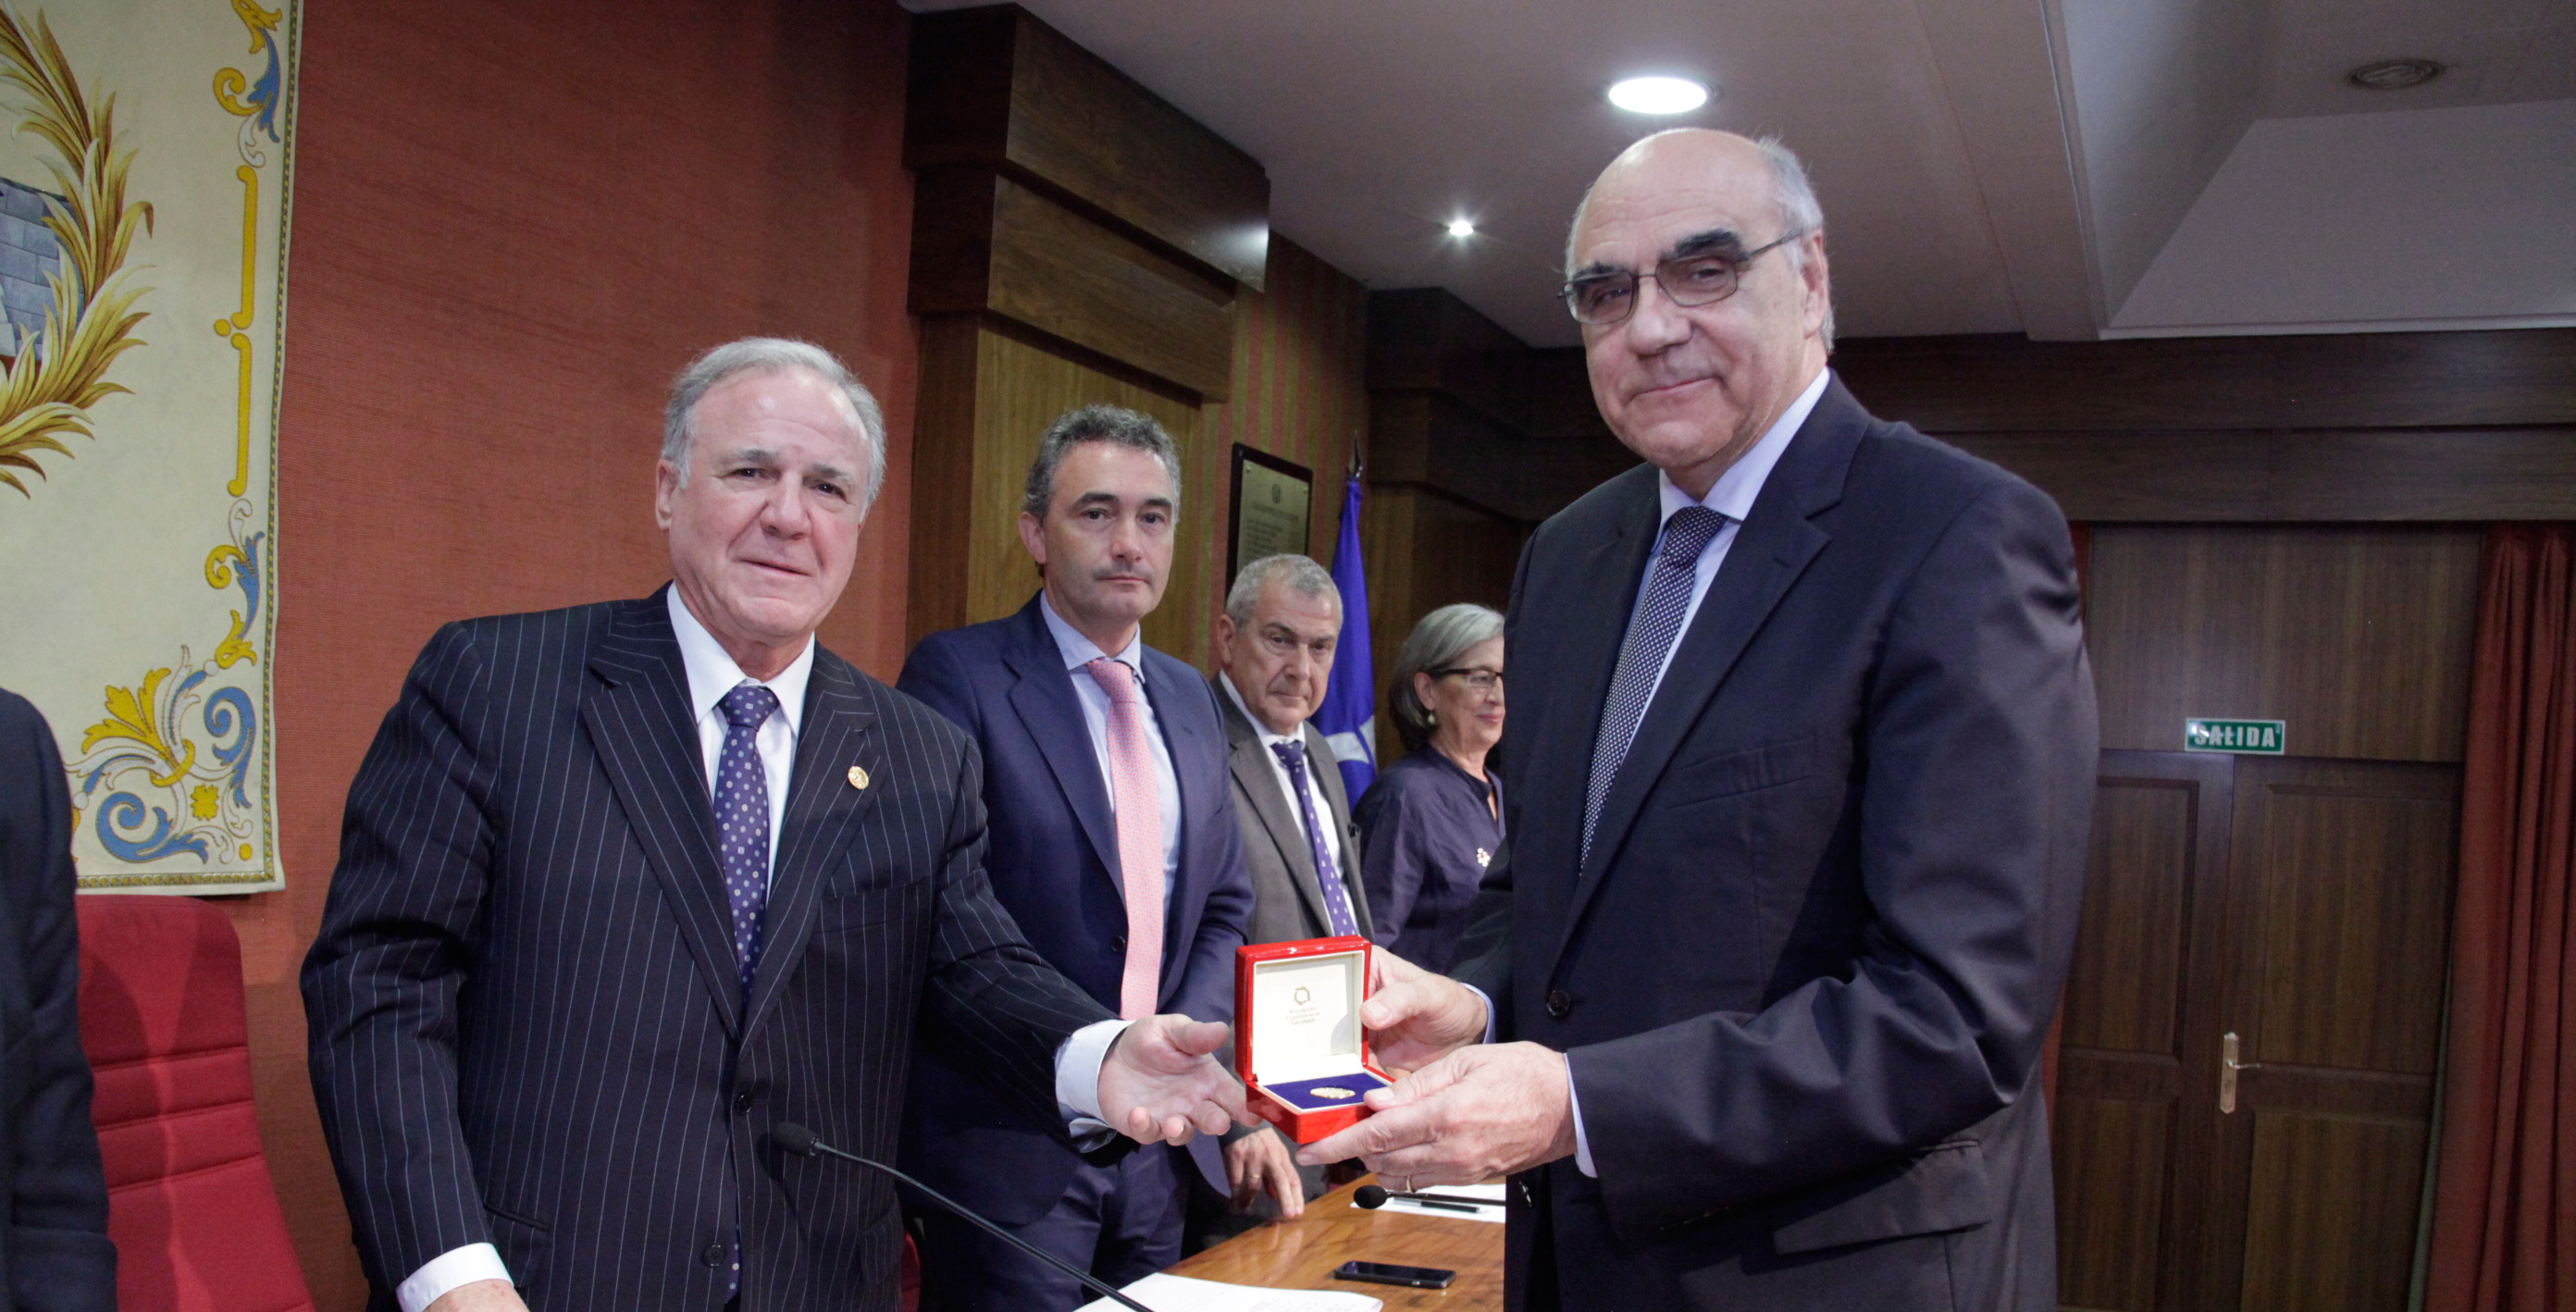 The Spanish Road Association awards Salvador Alemany with its Golden Medal 'Medalla de Oro de la Carretera'